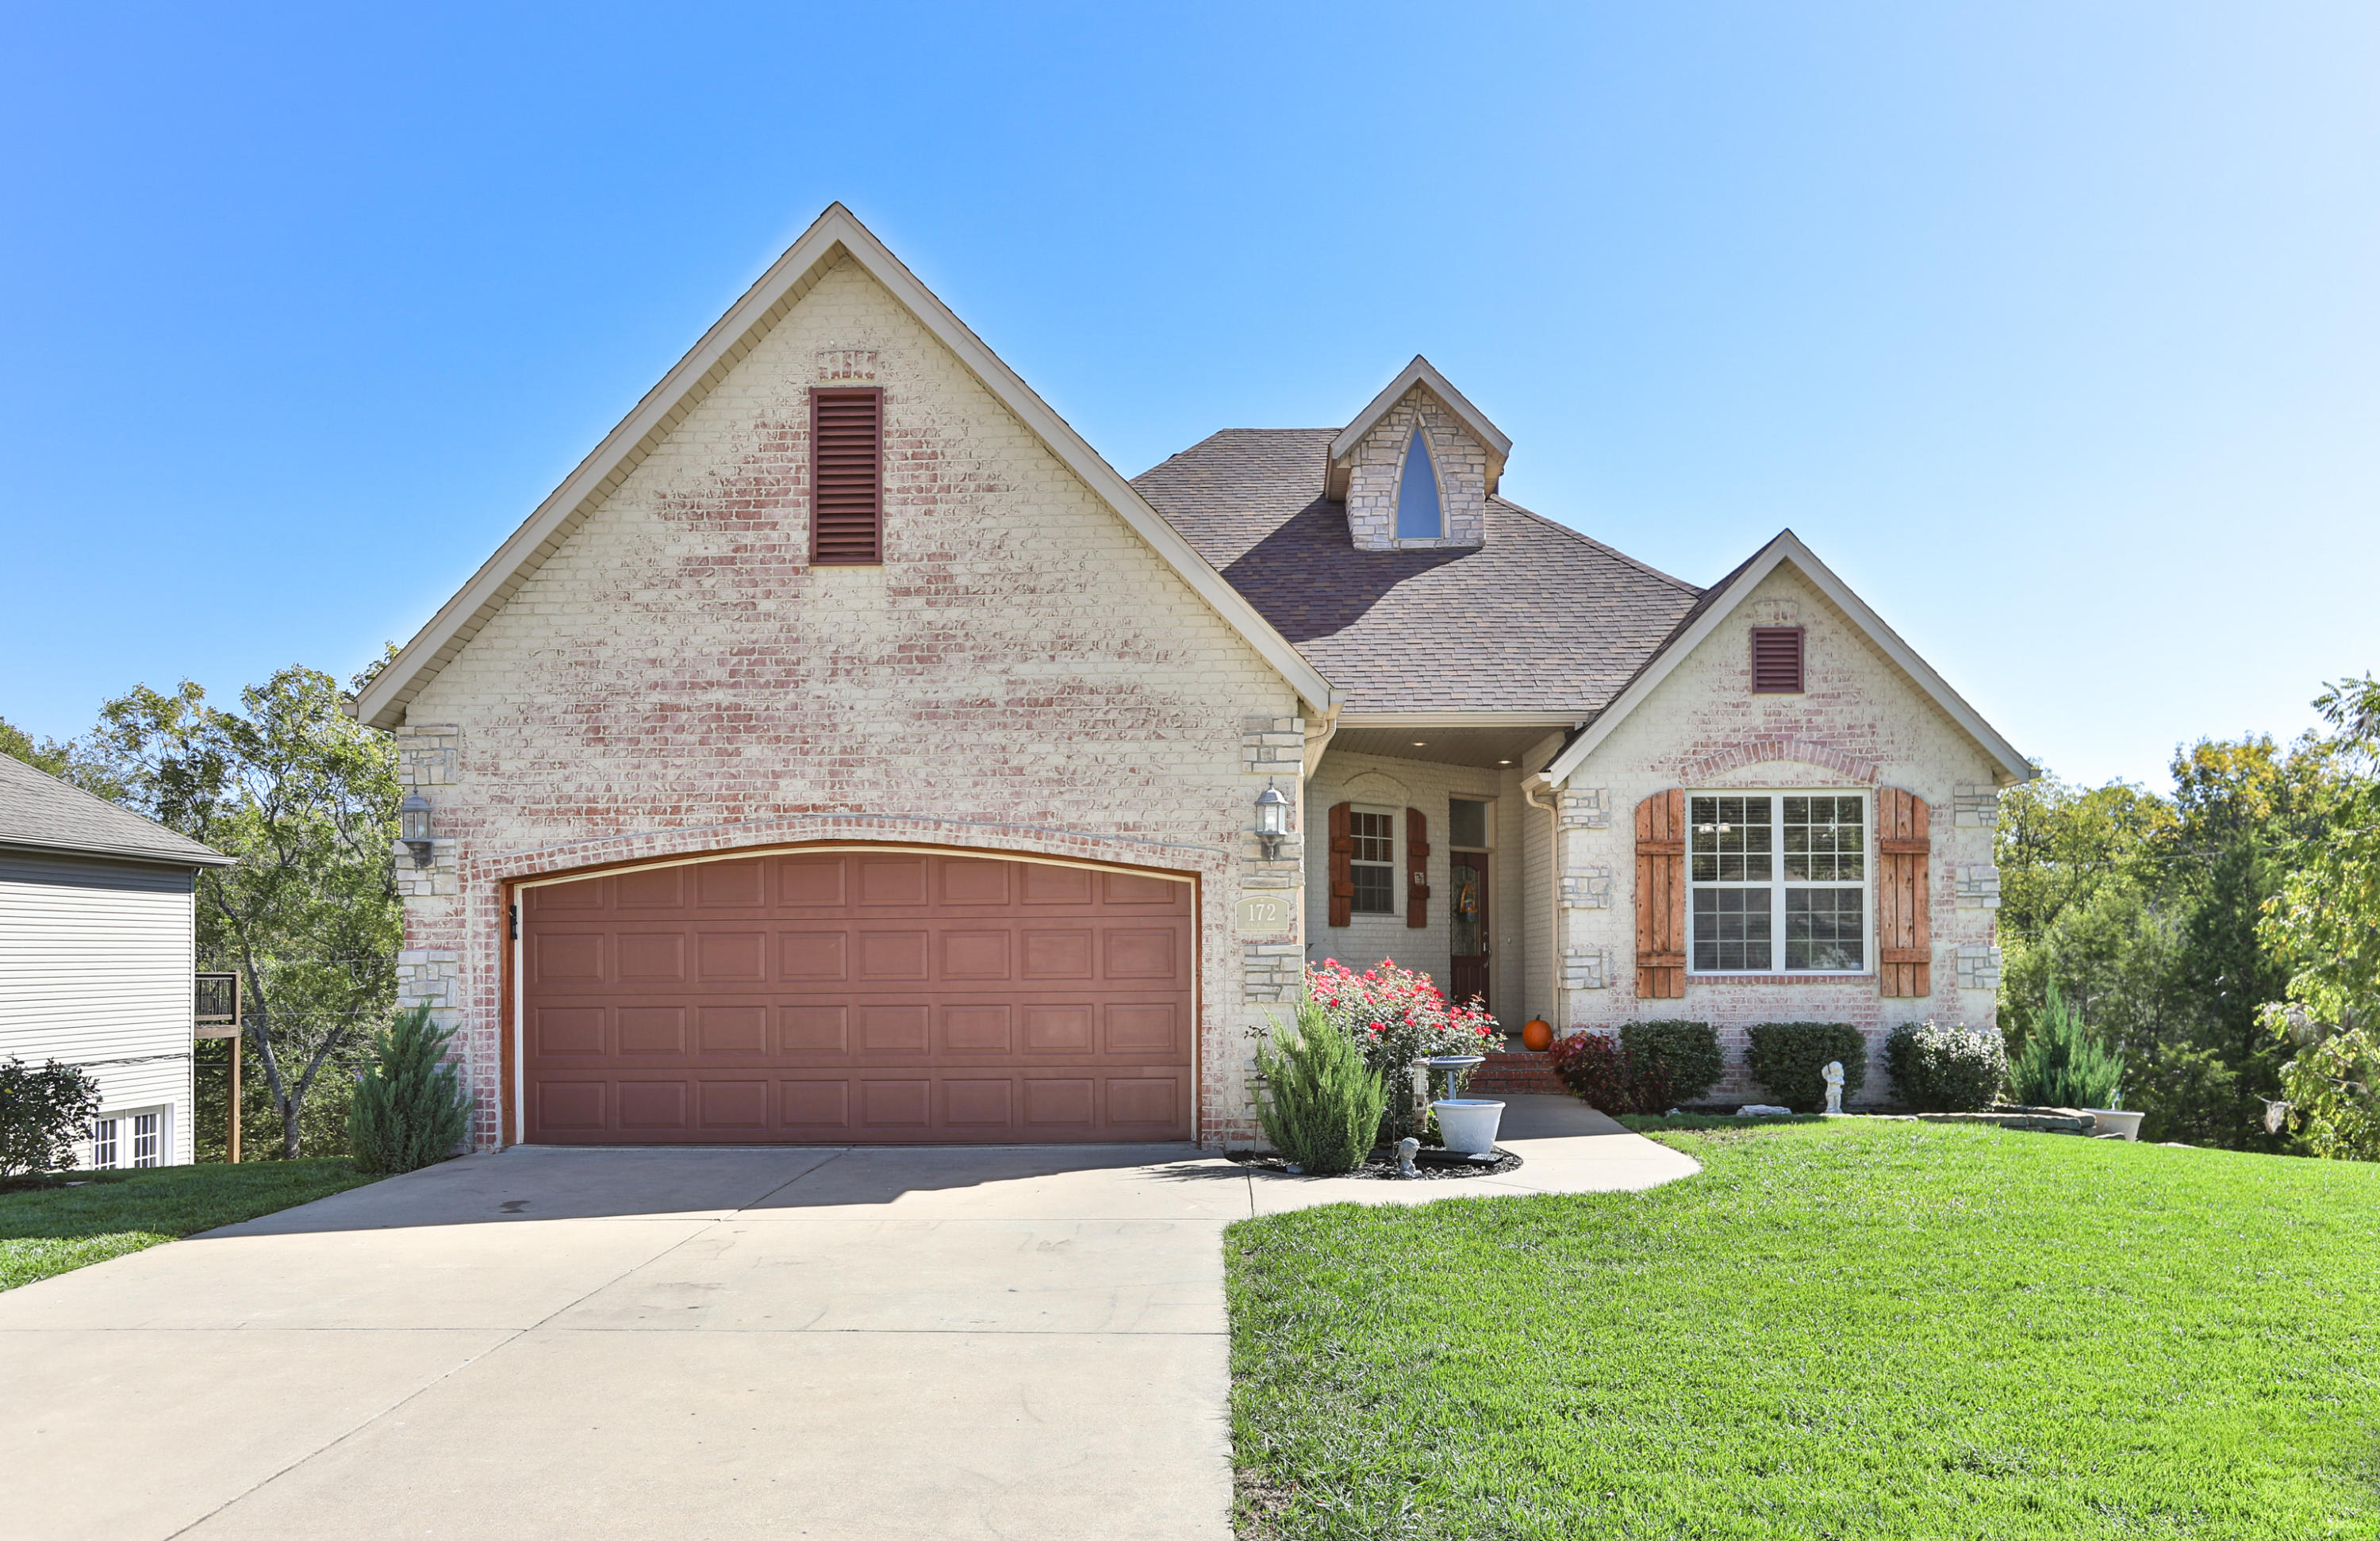 172 South Peach Brook Nixa, MO 65714